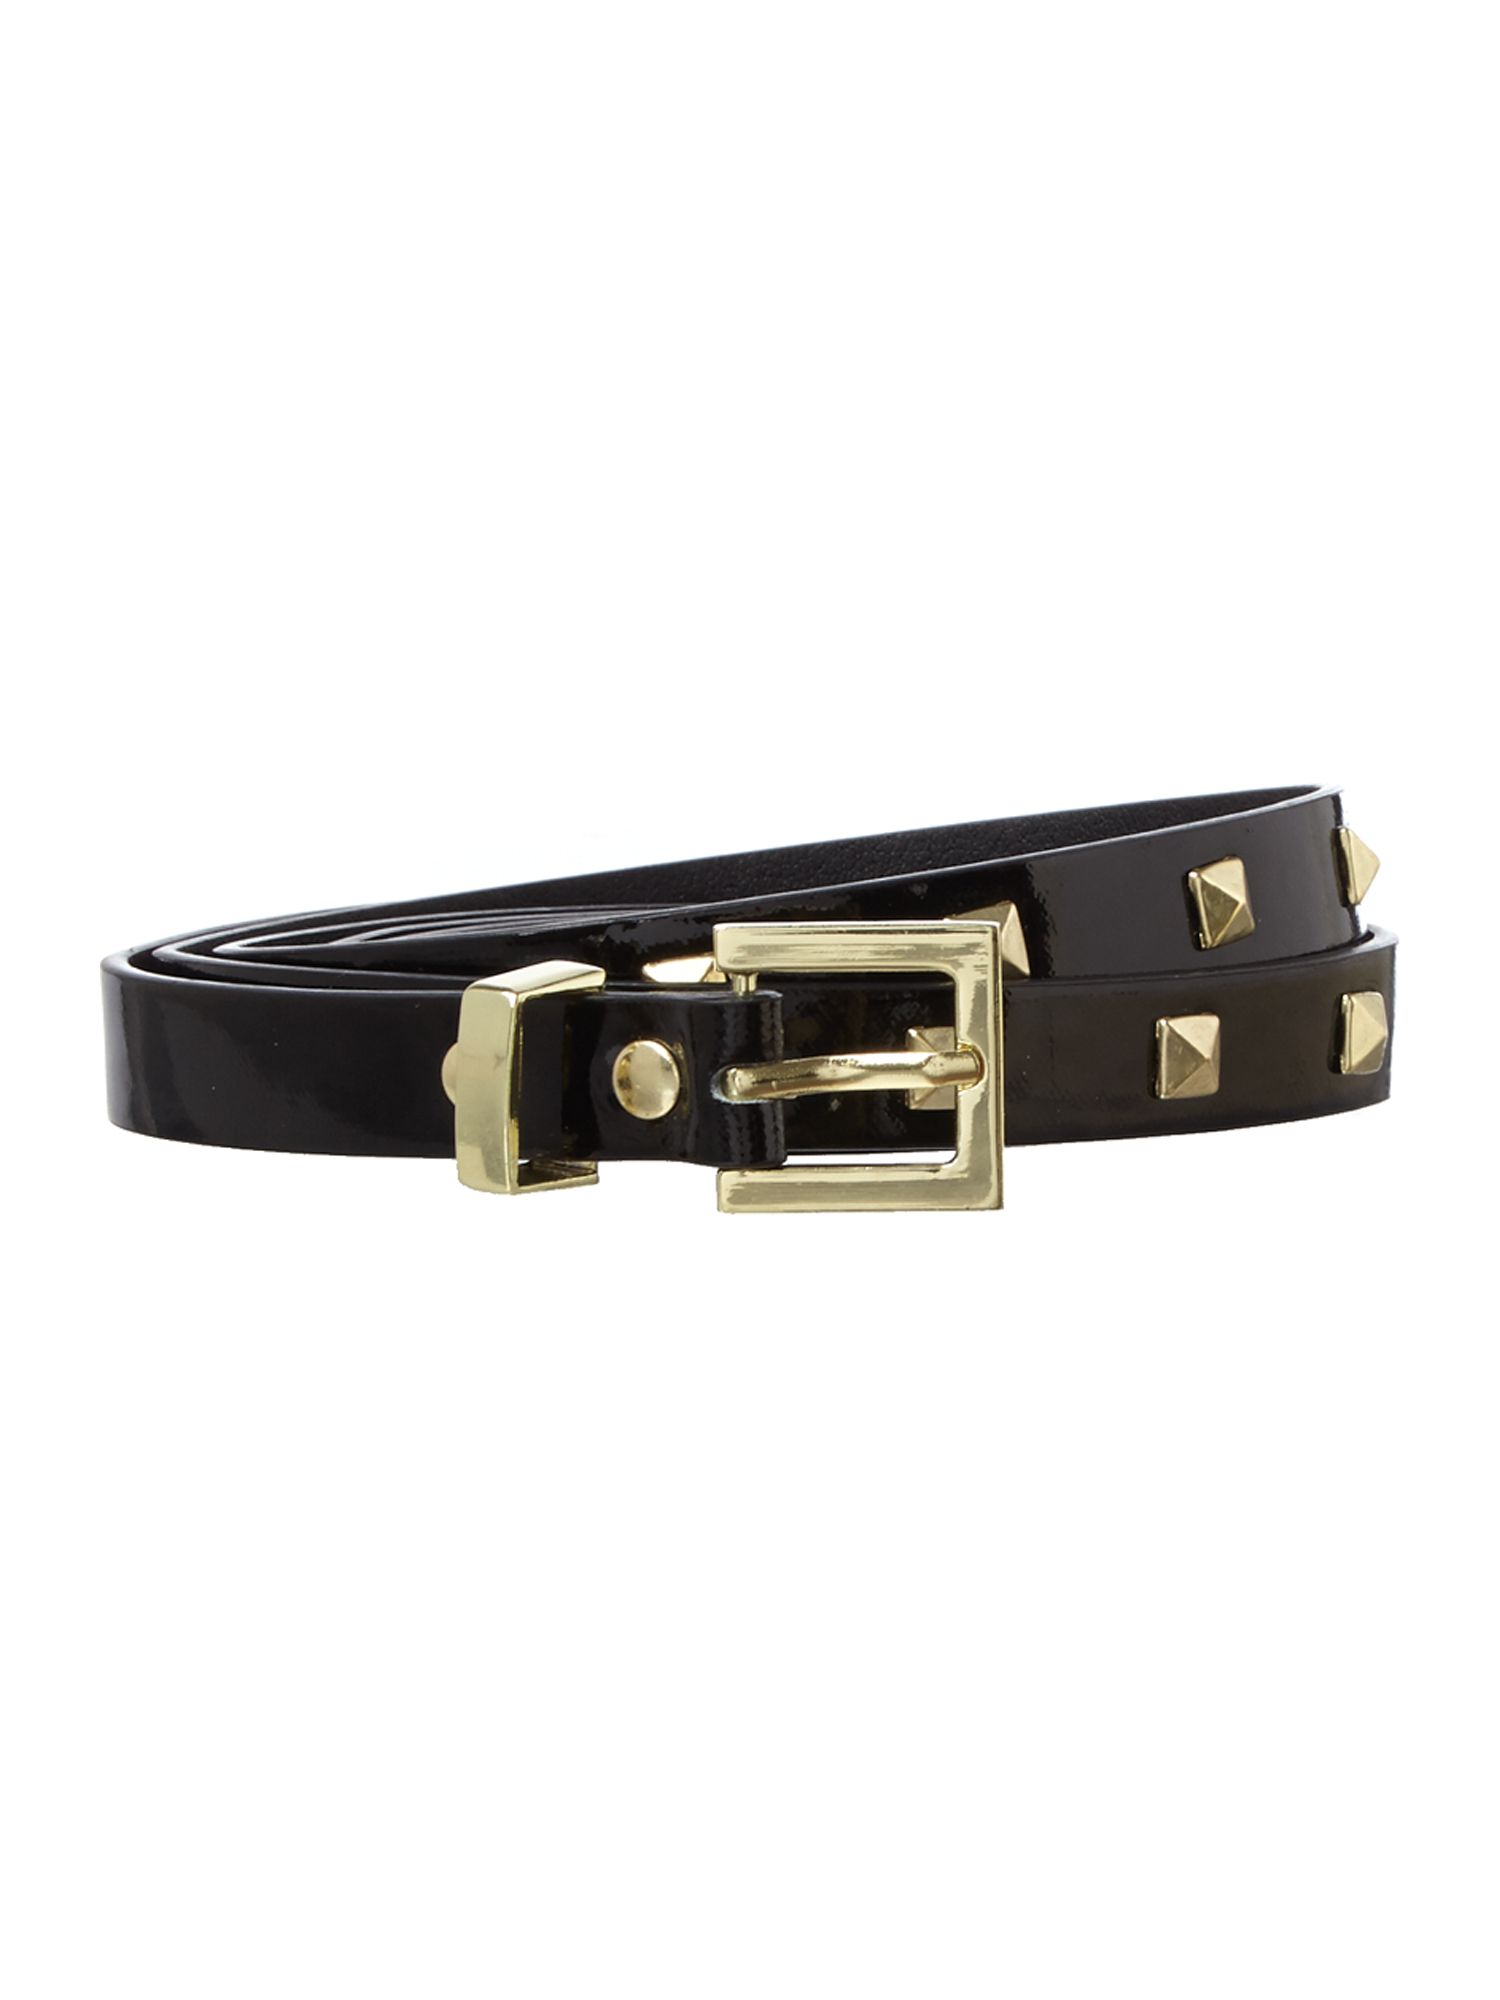 Mabel studded trouser belt